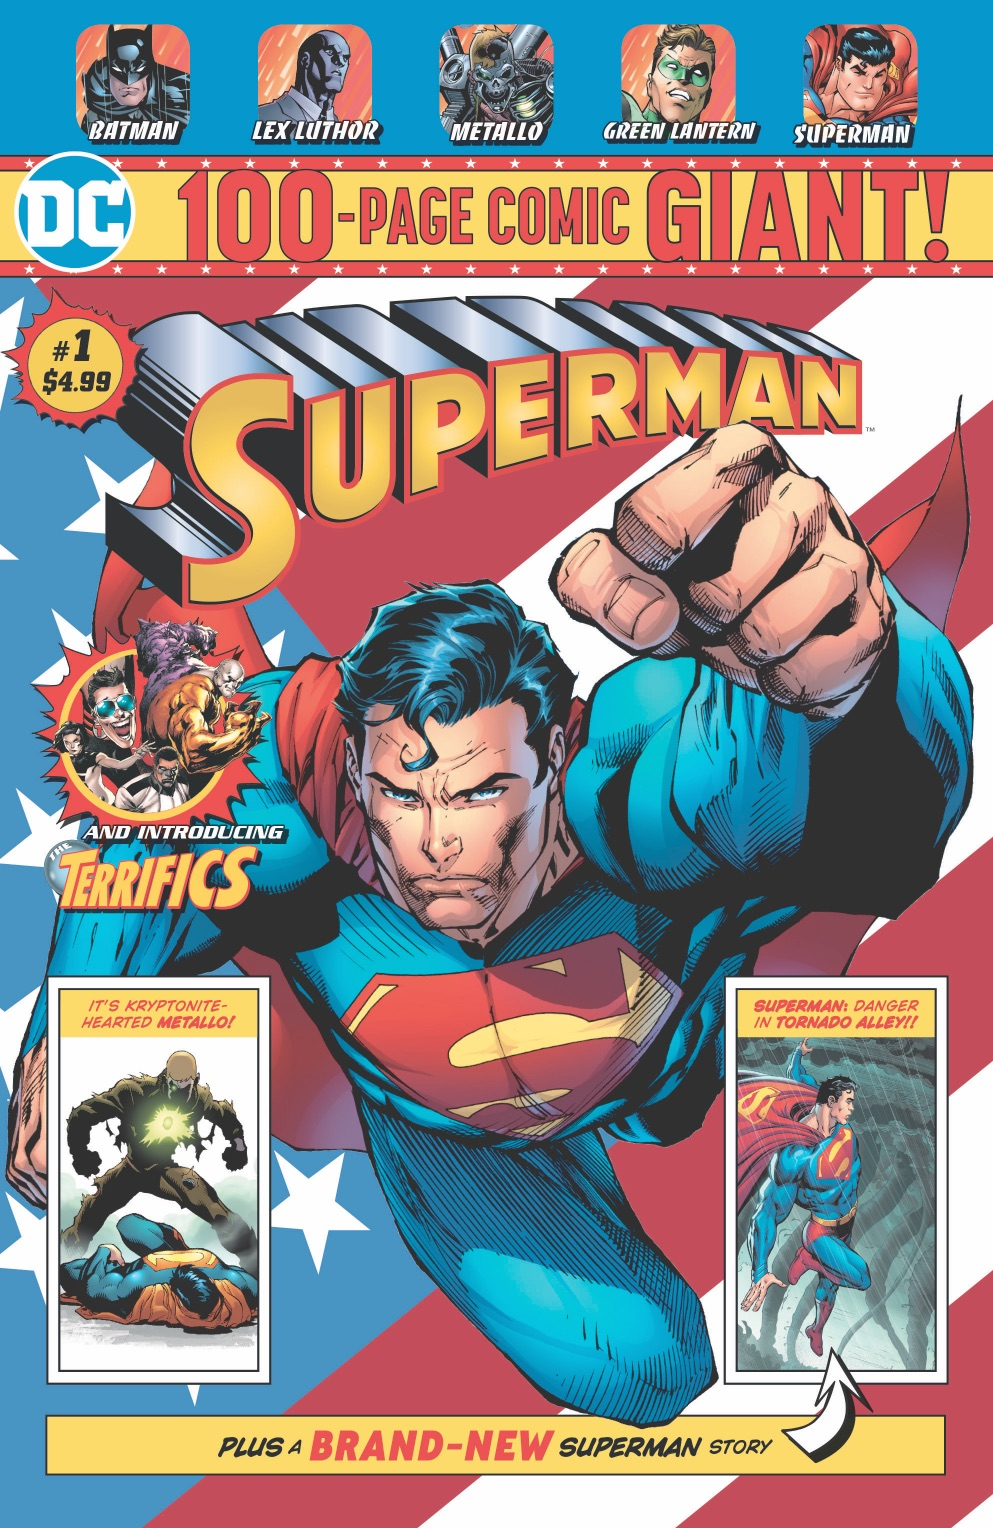 100 Page Giant Comics From Dc To Be Sold Exclusively At Walmart